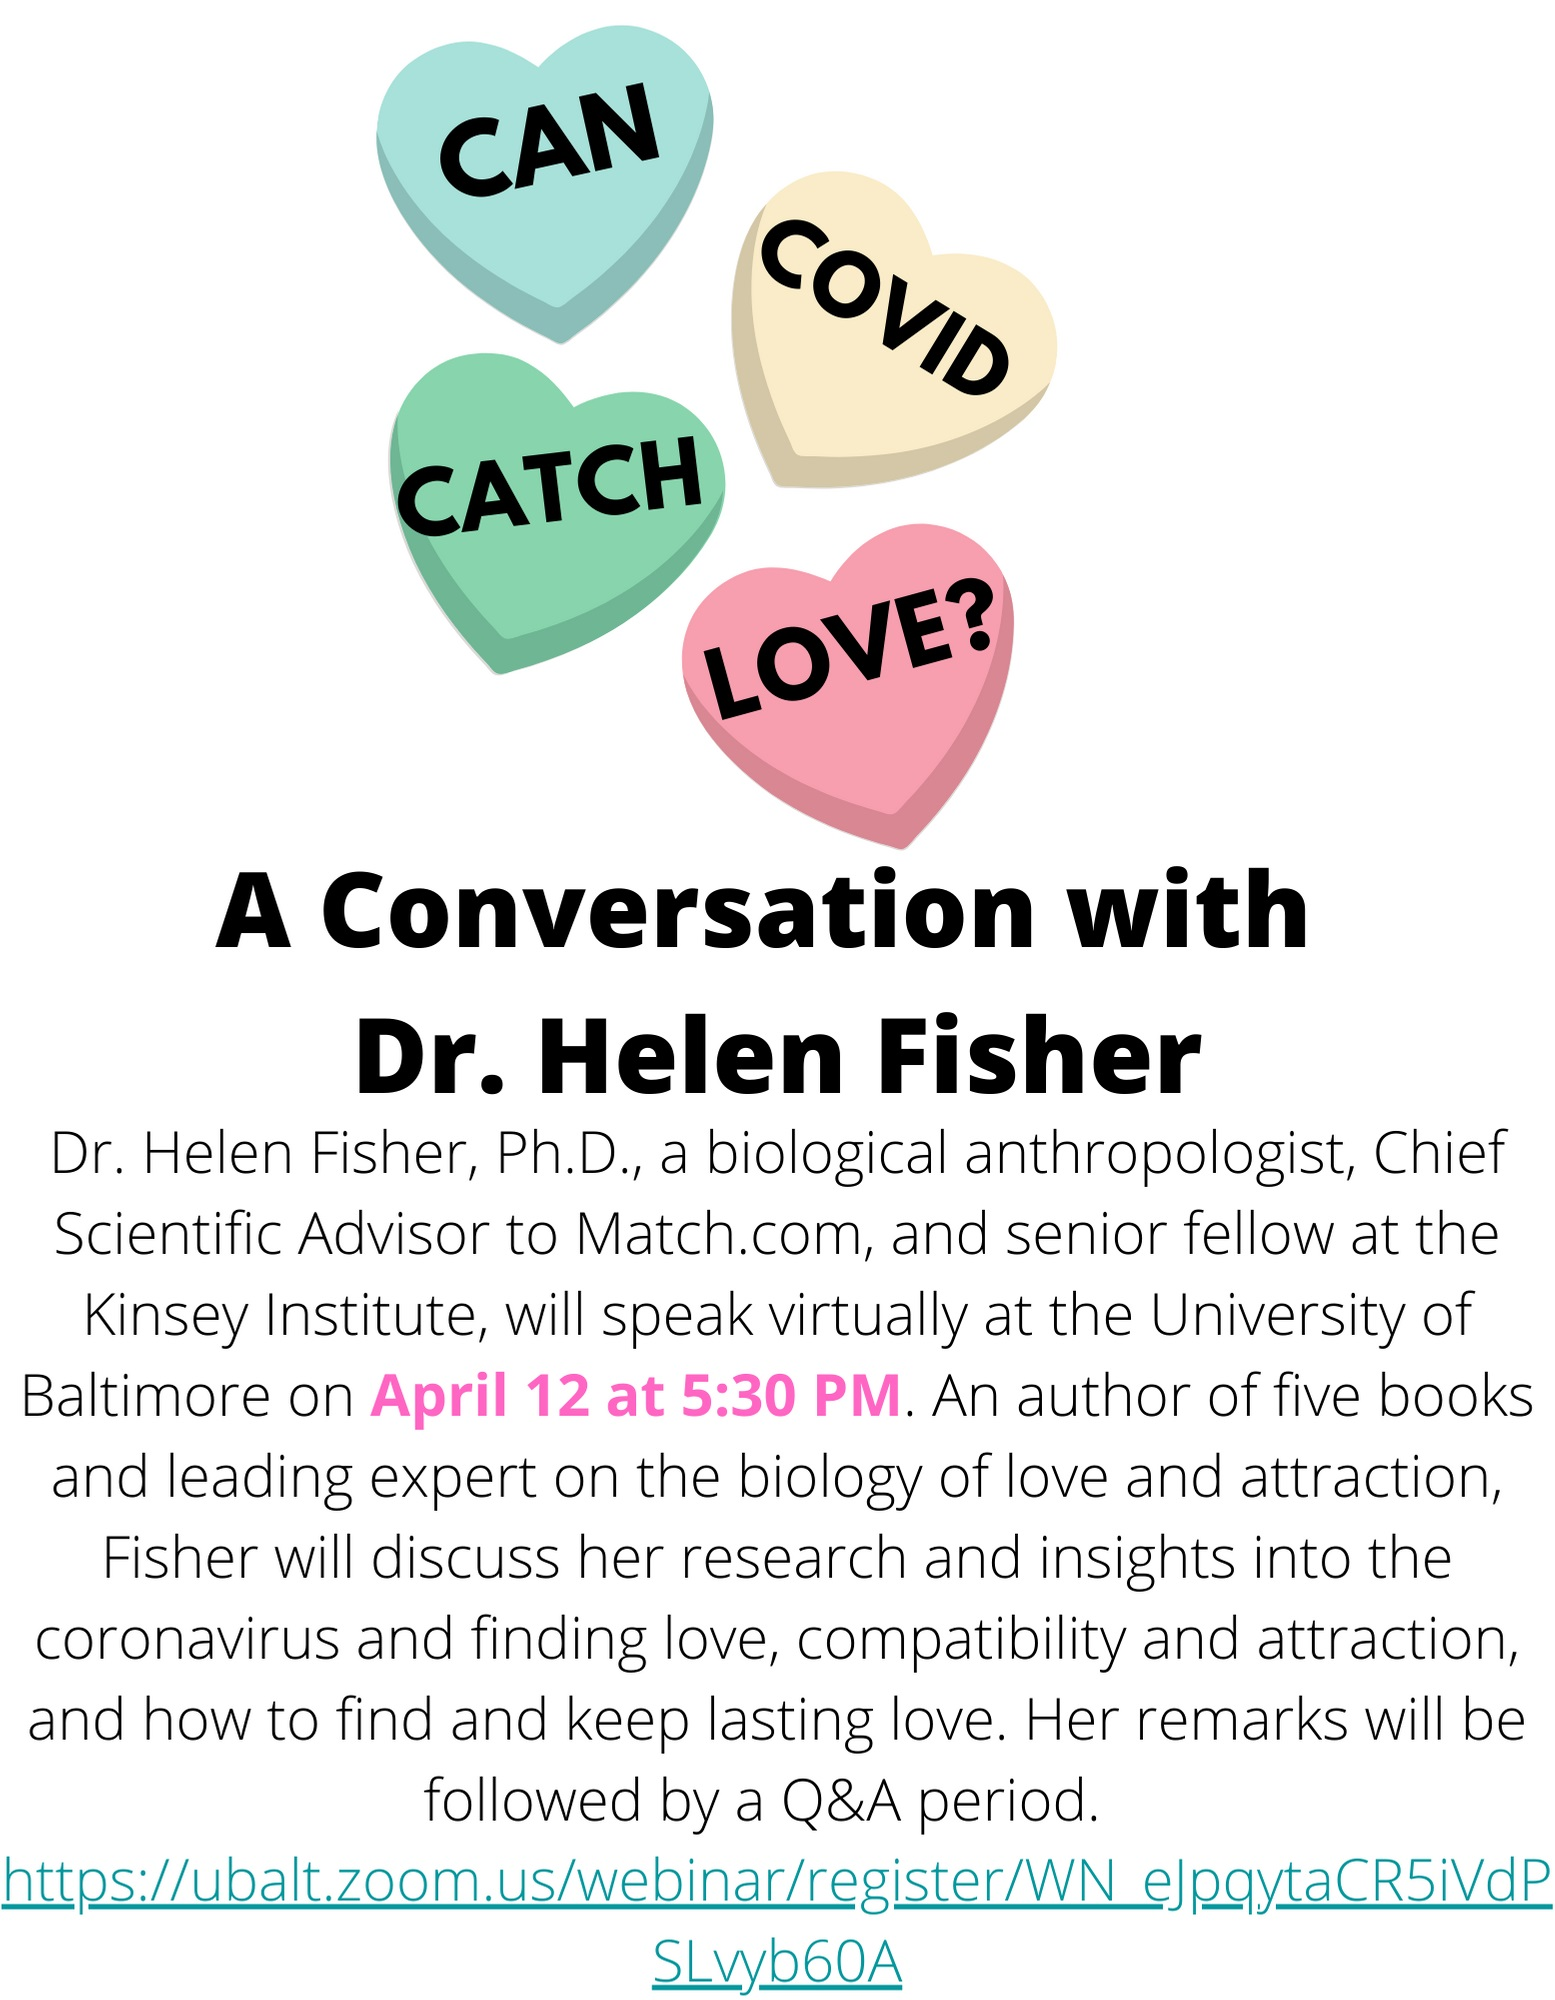 Can Covid Catch Love?: A Conversation with Dr. Helen Fisher